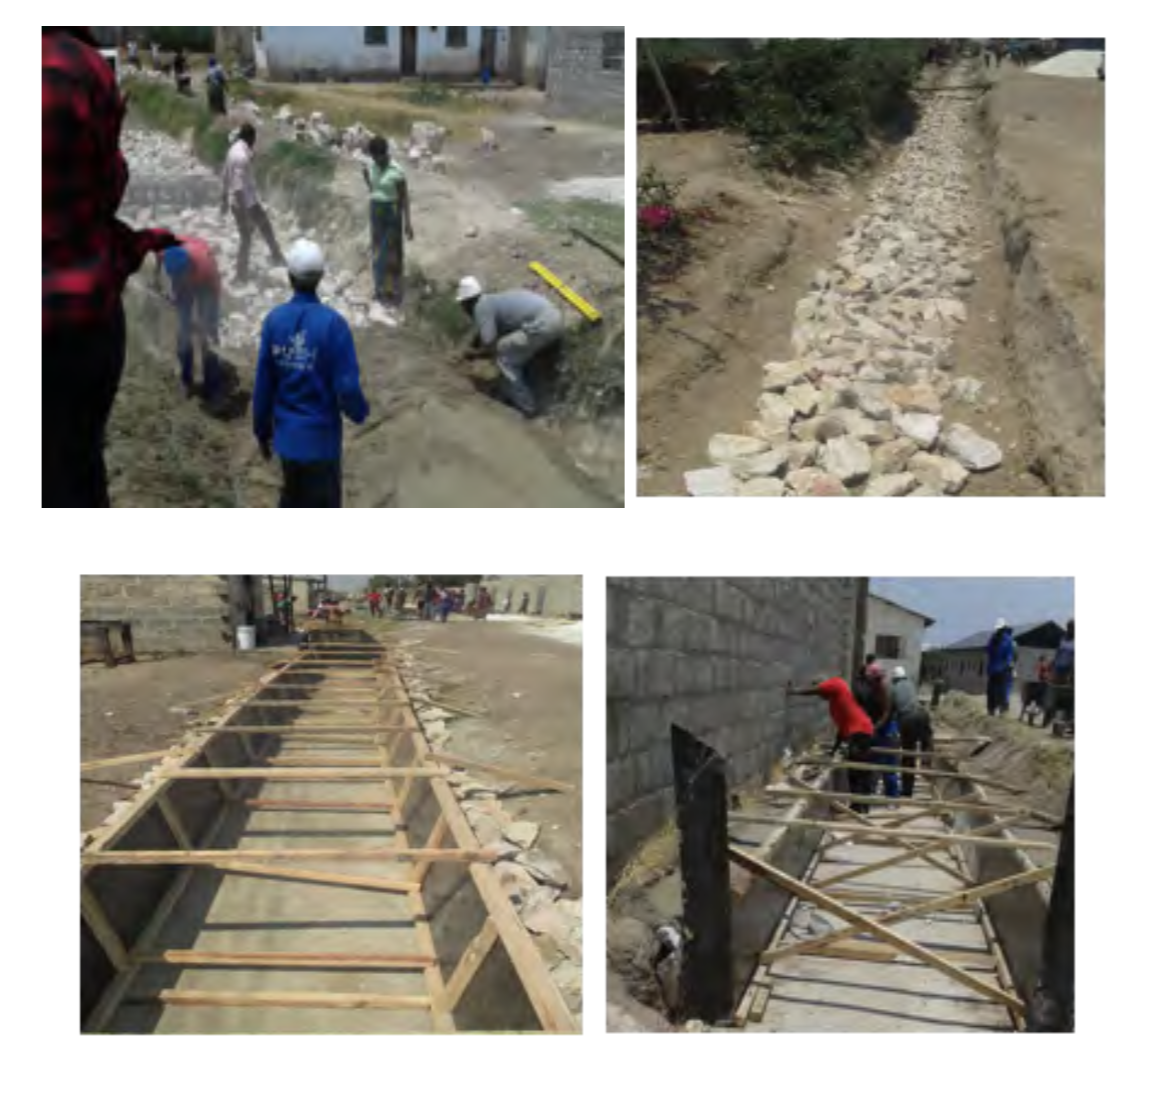 Excavation and concrete lining of the drainage. Pictures provided by: People's Process on Housing and Poverty in Zambia.